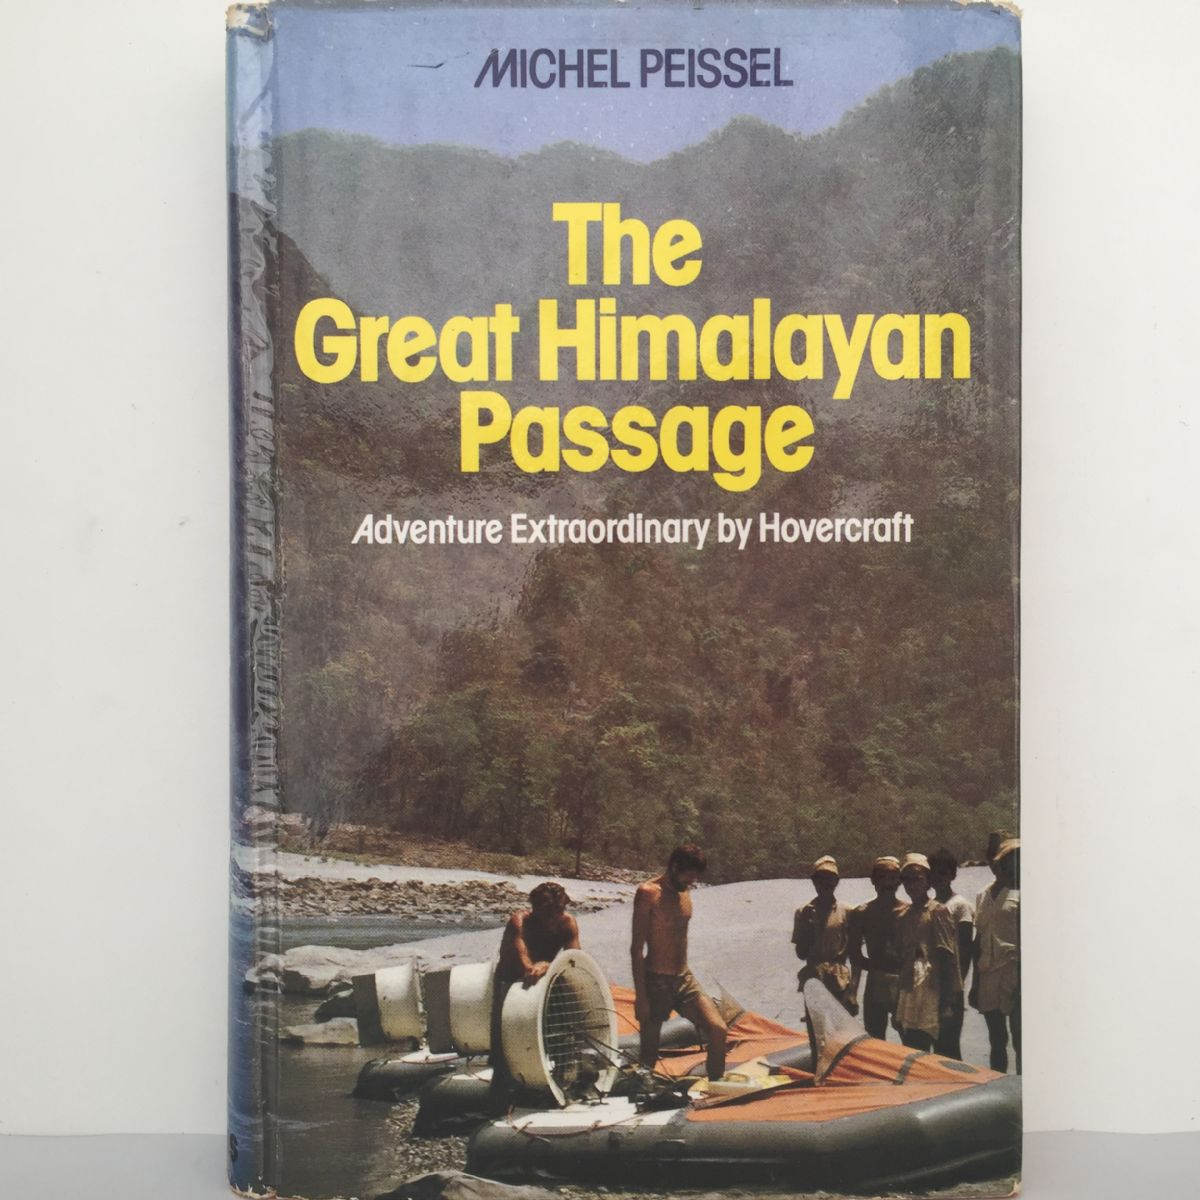 The Great Himalayan Passage